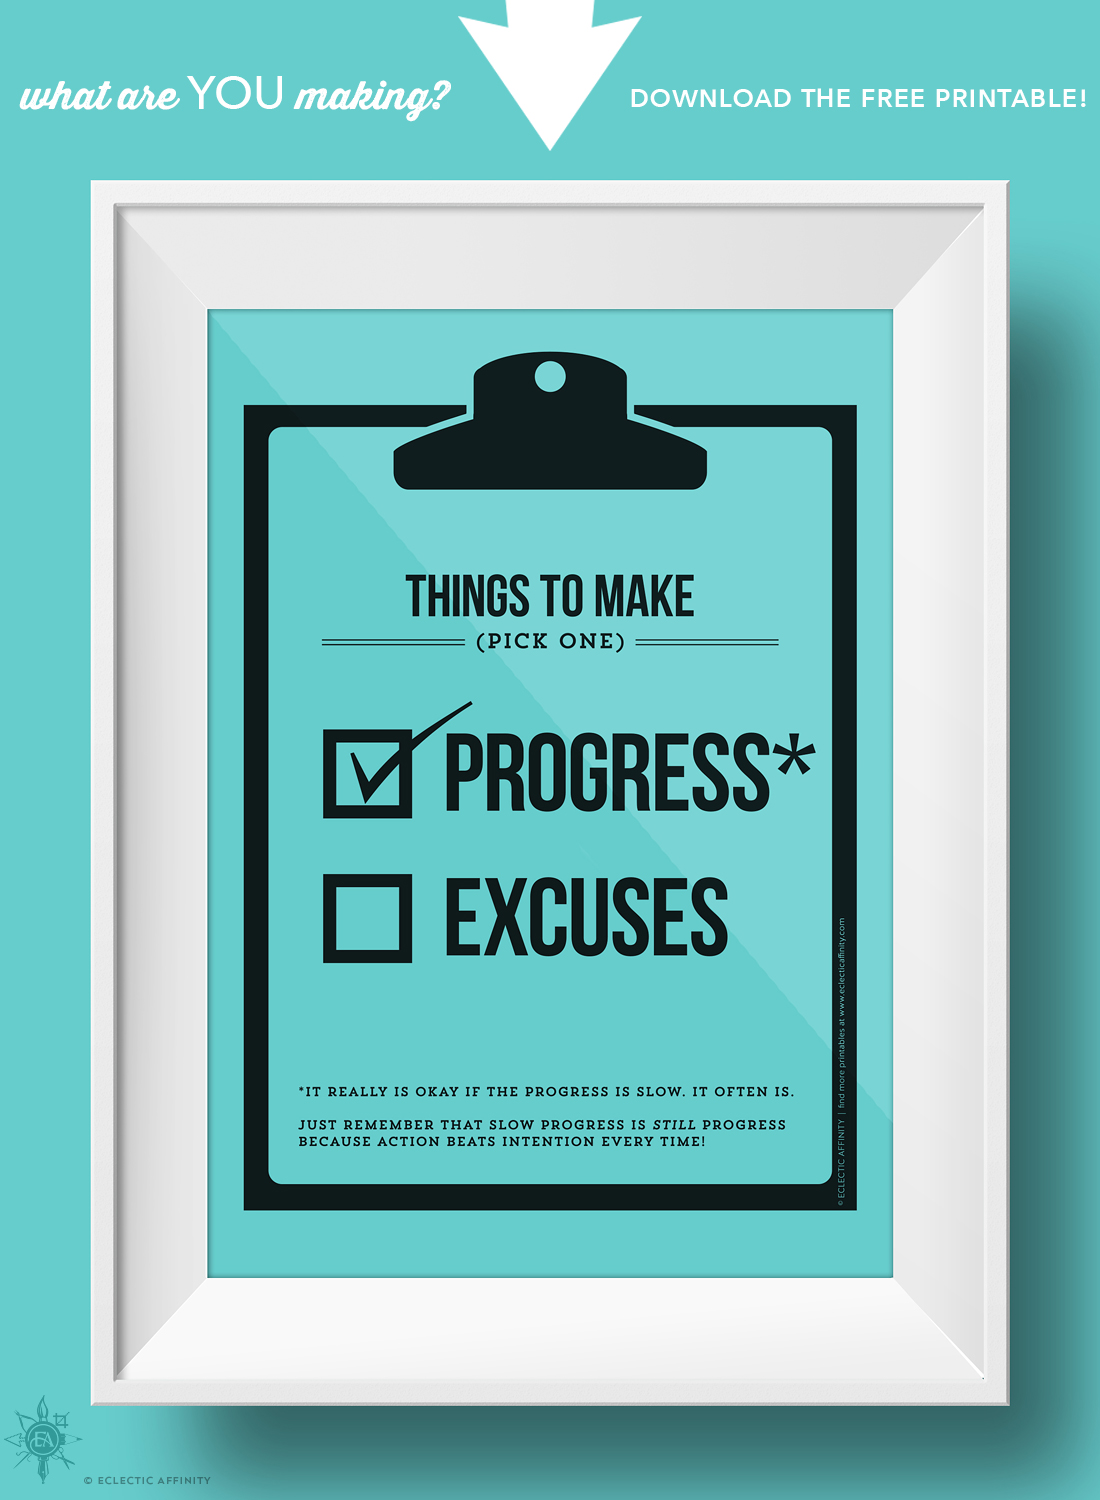 Download the free printable by Eclectic Affinity - Things to Make: Progress or Excuses